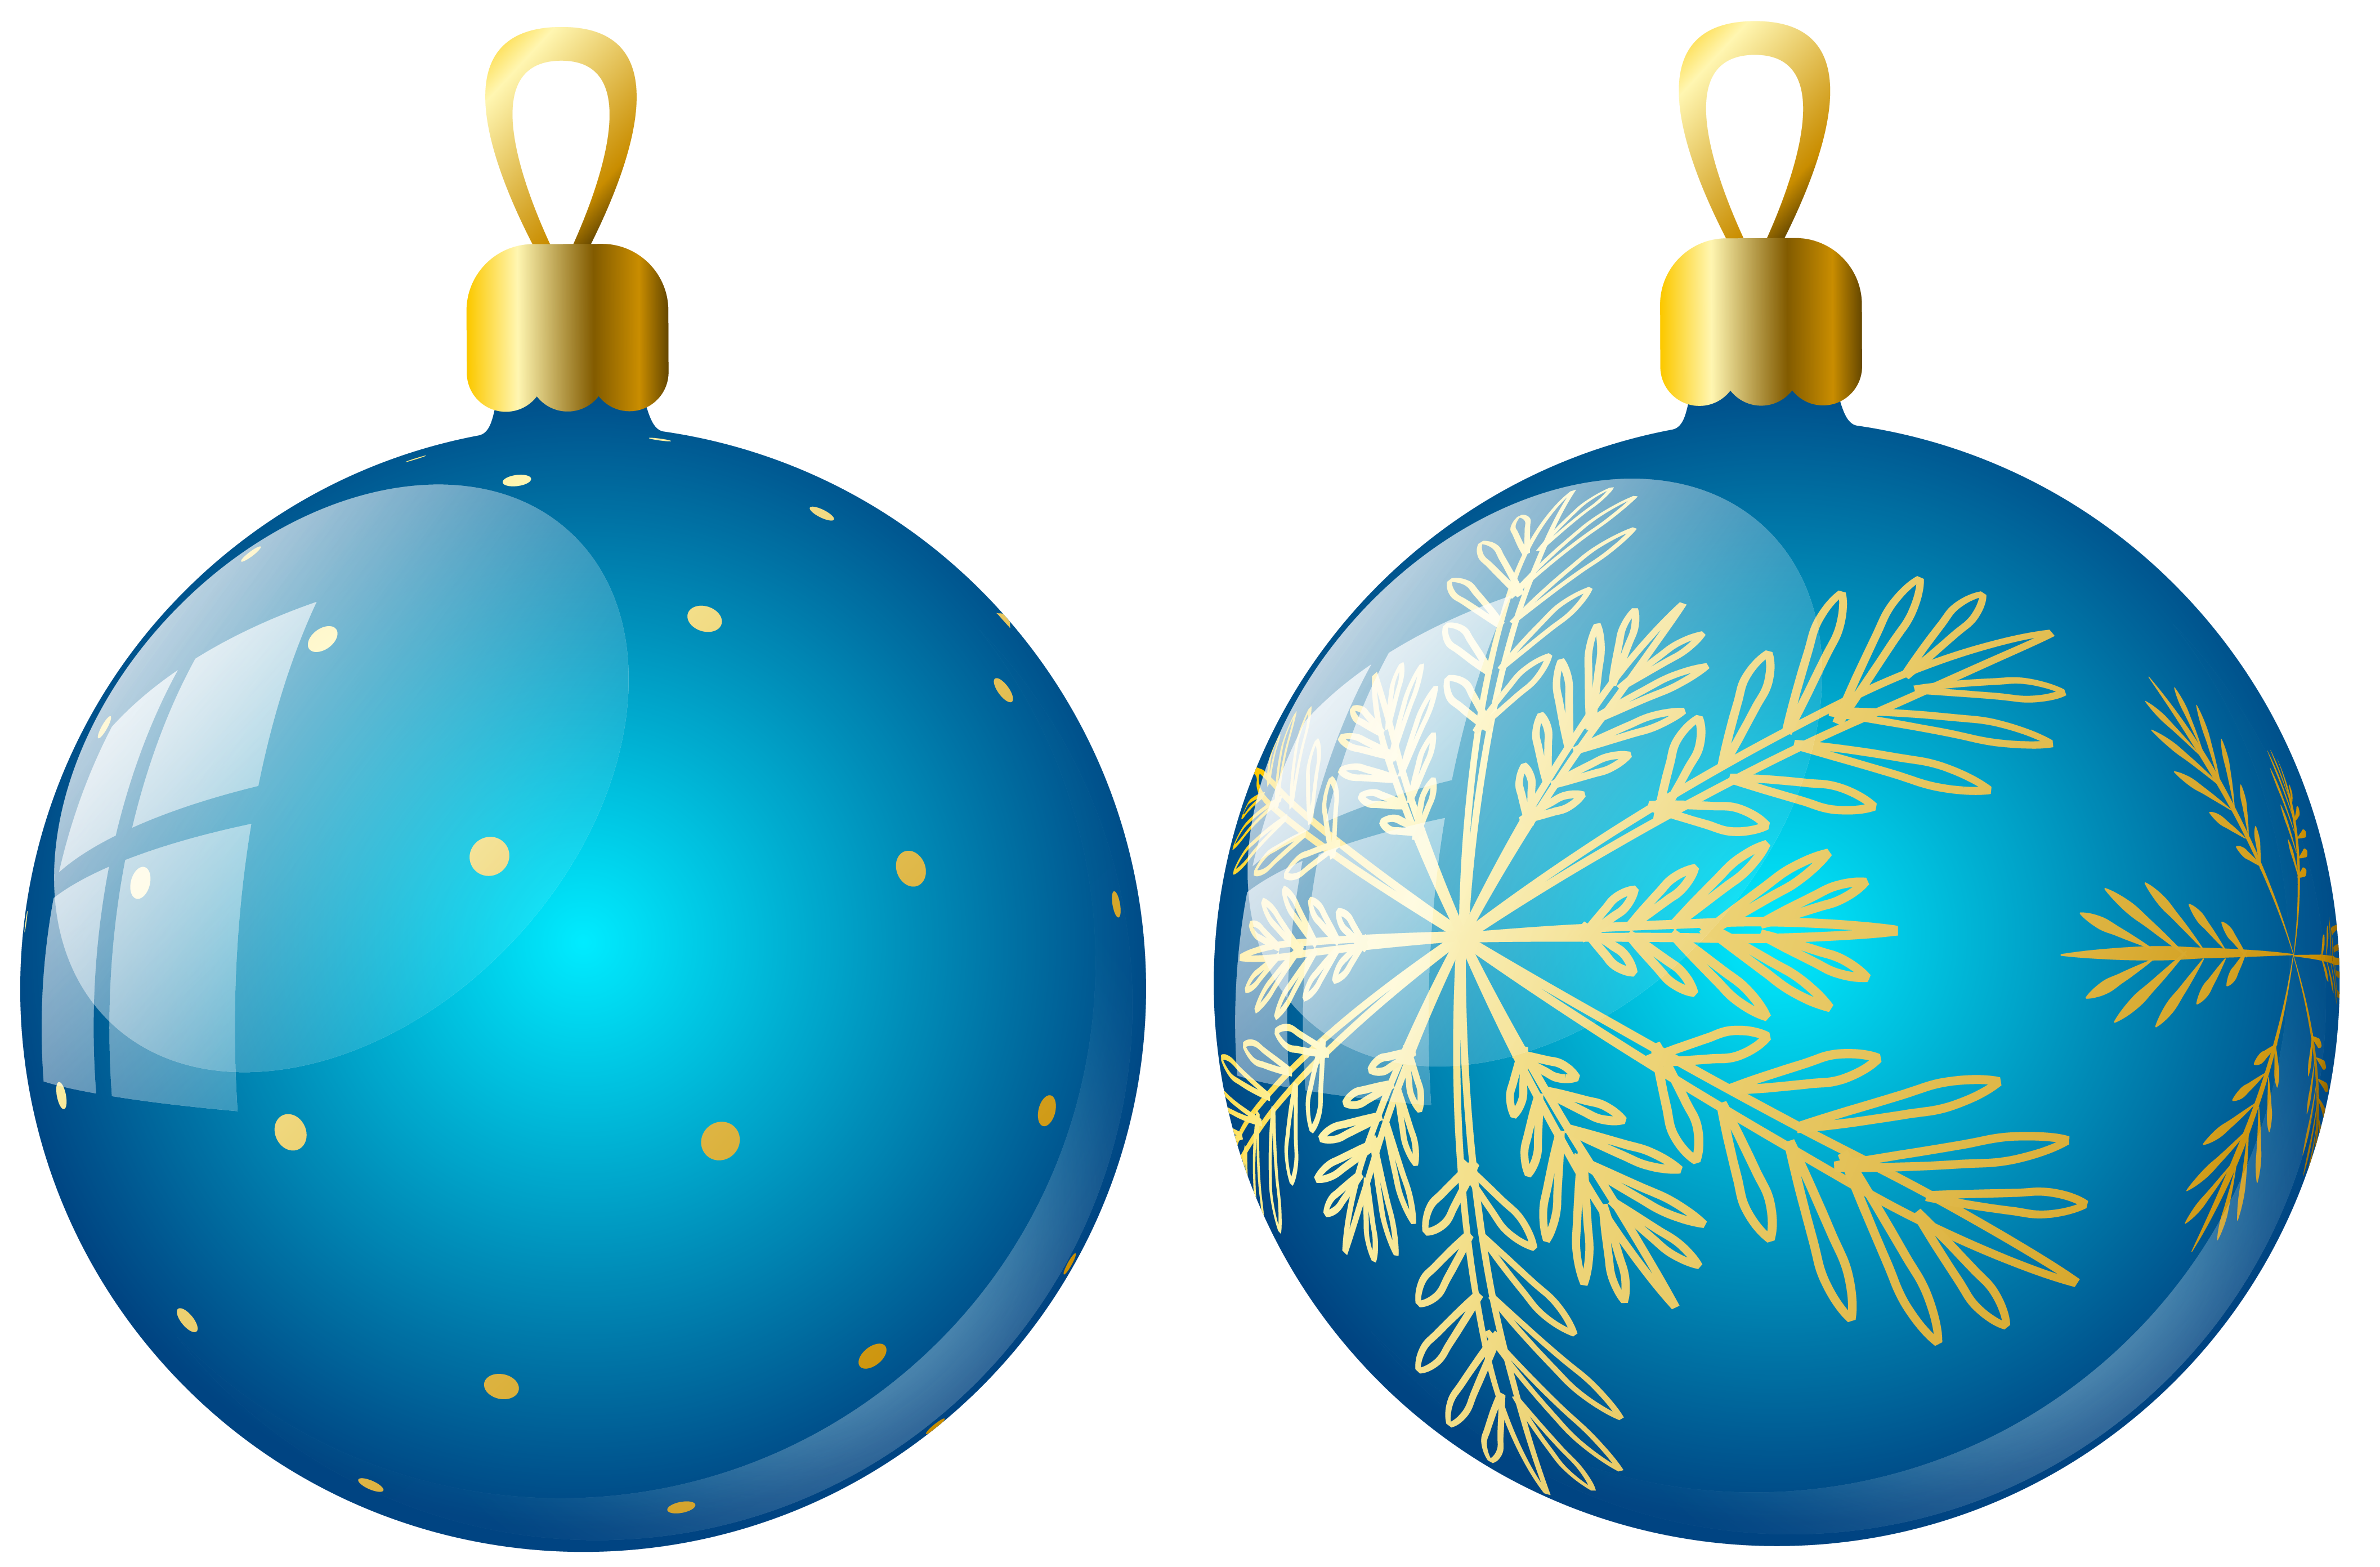 Blue christmas ornament clipart free library Transparent Two Blue Christmas Balls Ornaments Clipart | Gallery ... free library